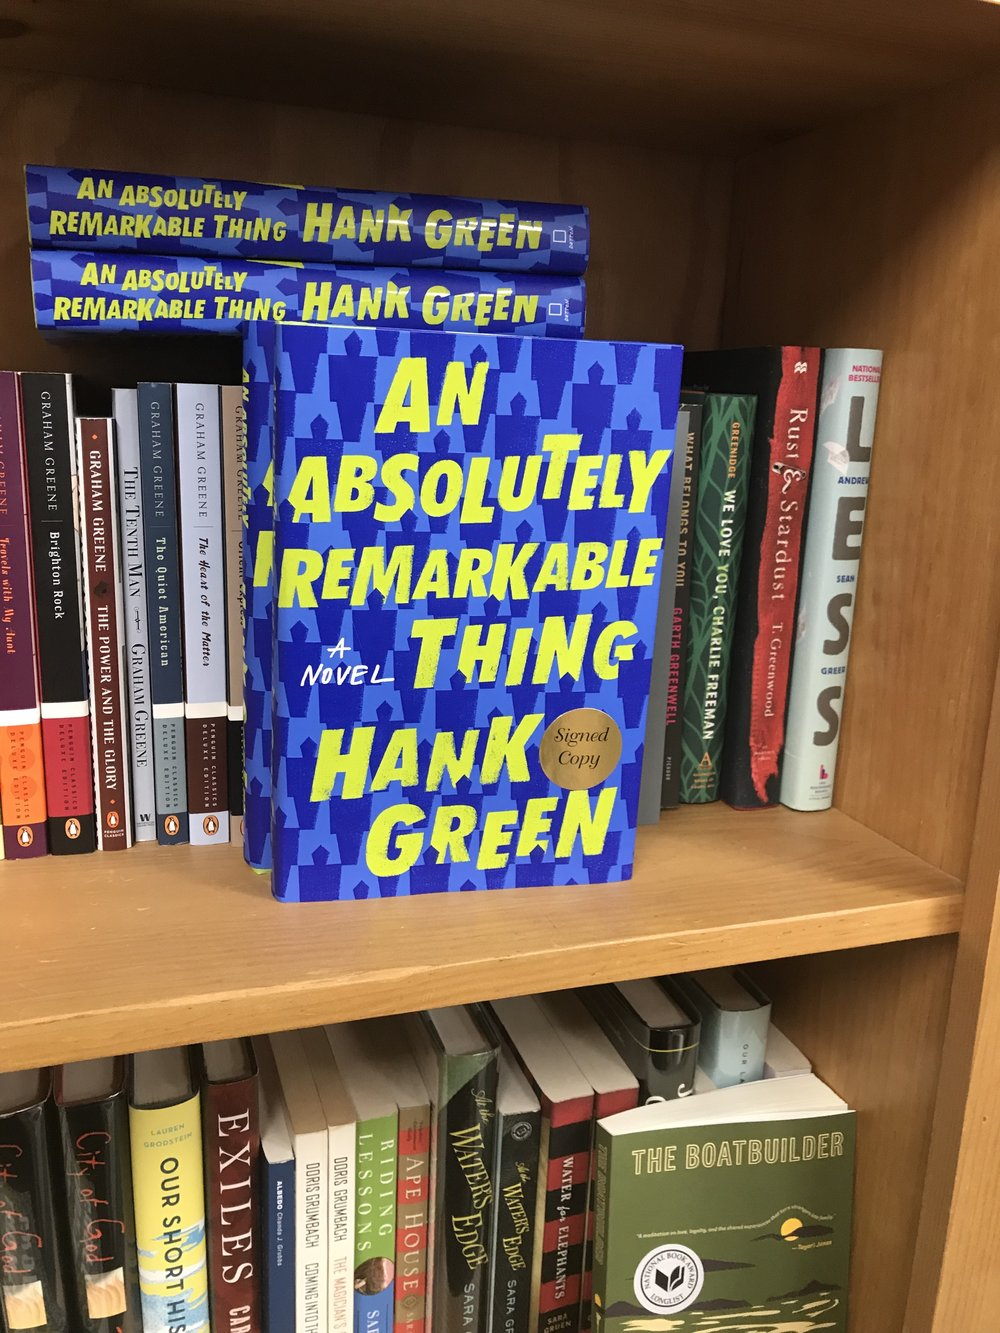 Upcoming pick, An Absolutely Remarkable Thing by Hank Green on display at Lemuria!